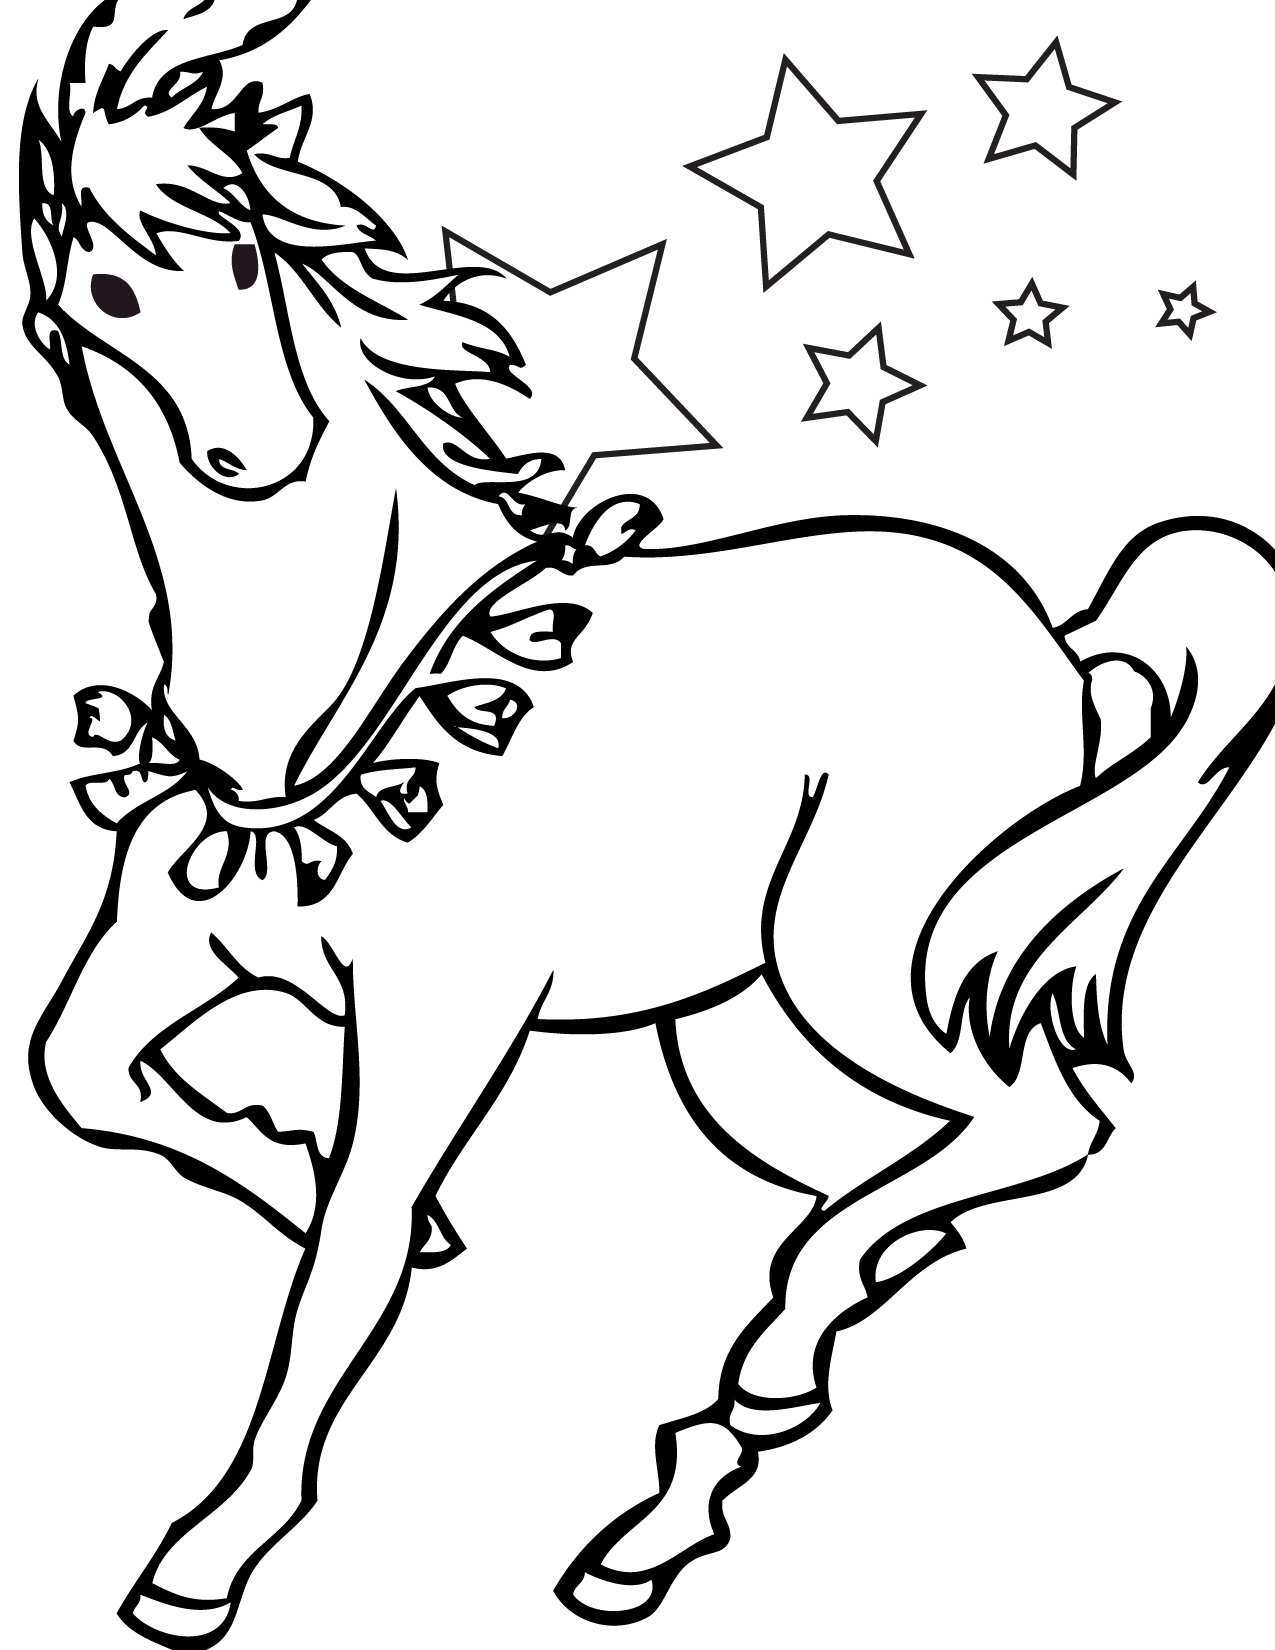 horse for coloring horse coloring pages for kids coloring pages for kids horse for coloring